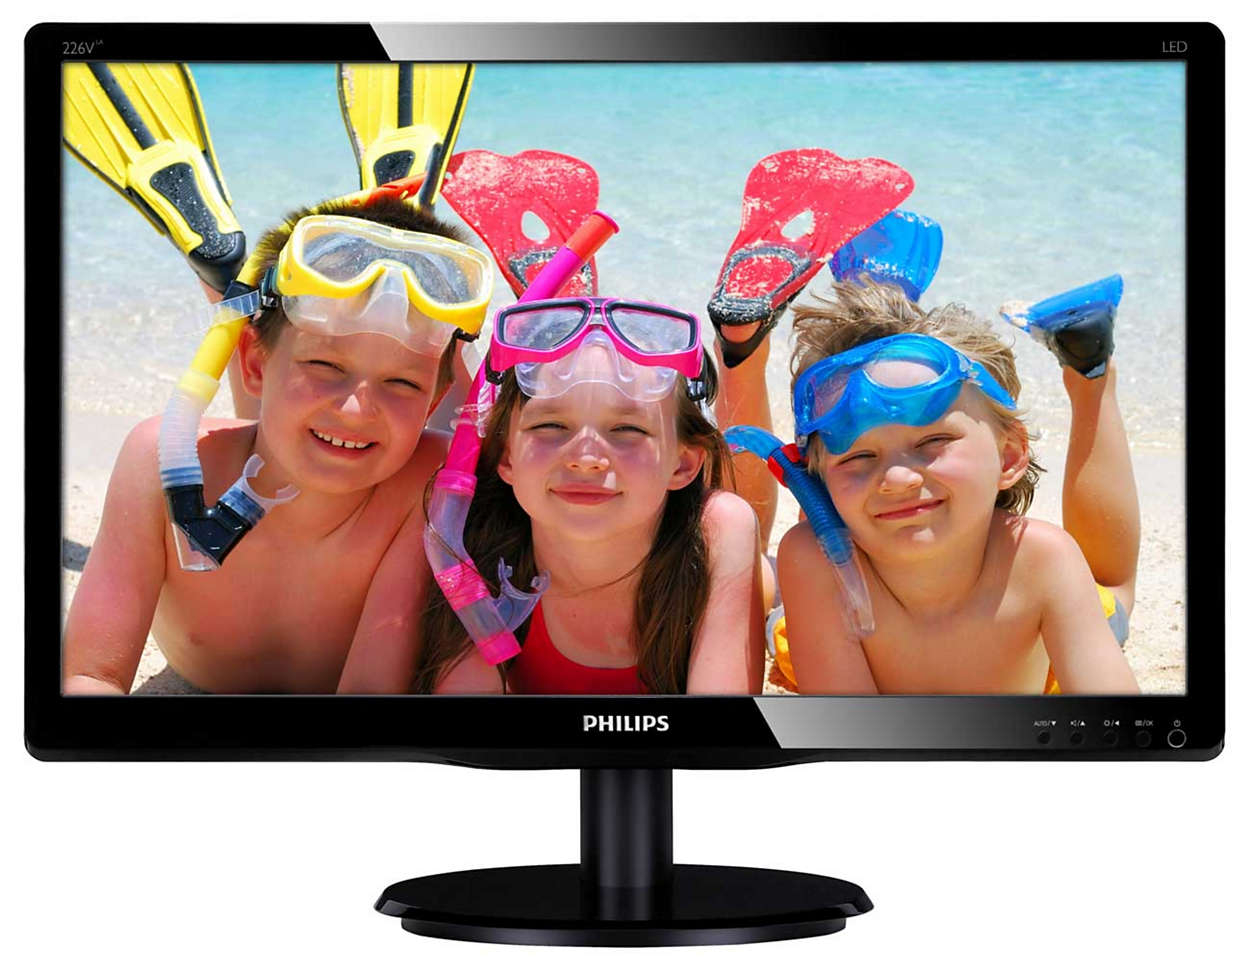 """Philips LCD 226V4LAB 21,5""""wide/1920x1080/5ms/10mil:1/DVI/LED/repro"""